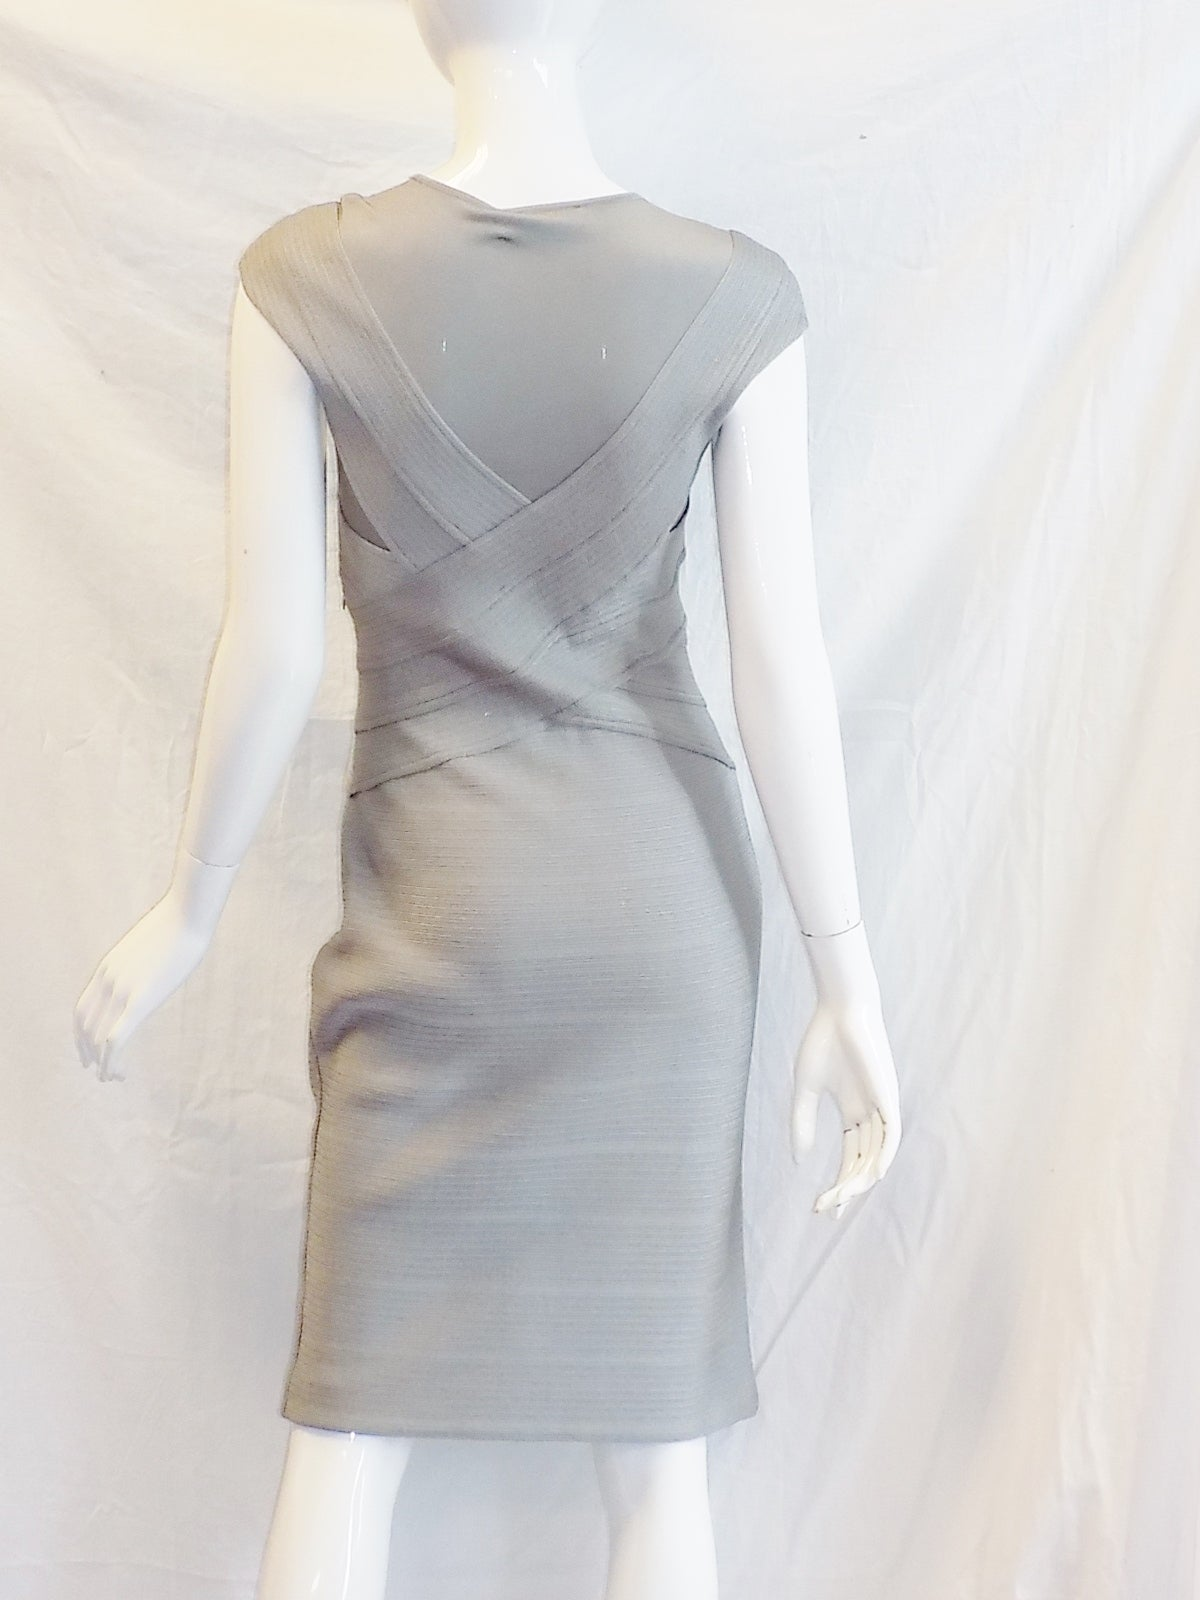 Christian dior silver grey bandage cocktail dress at 1stdibs for Dior couture dress price